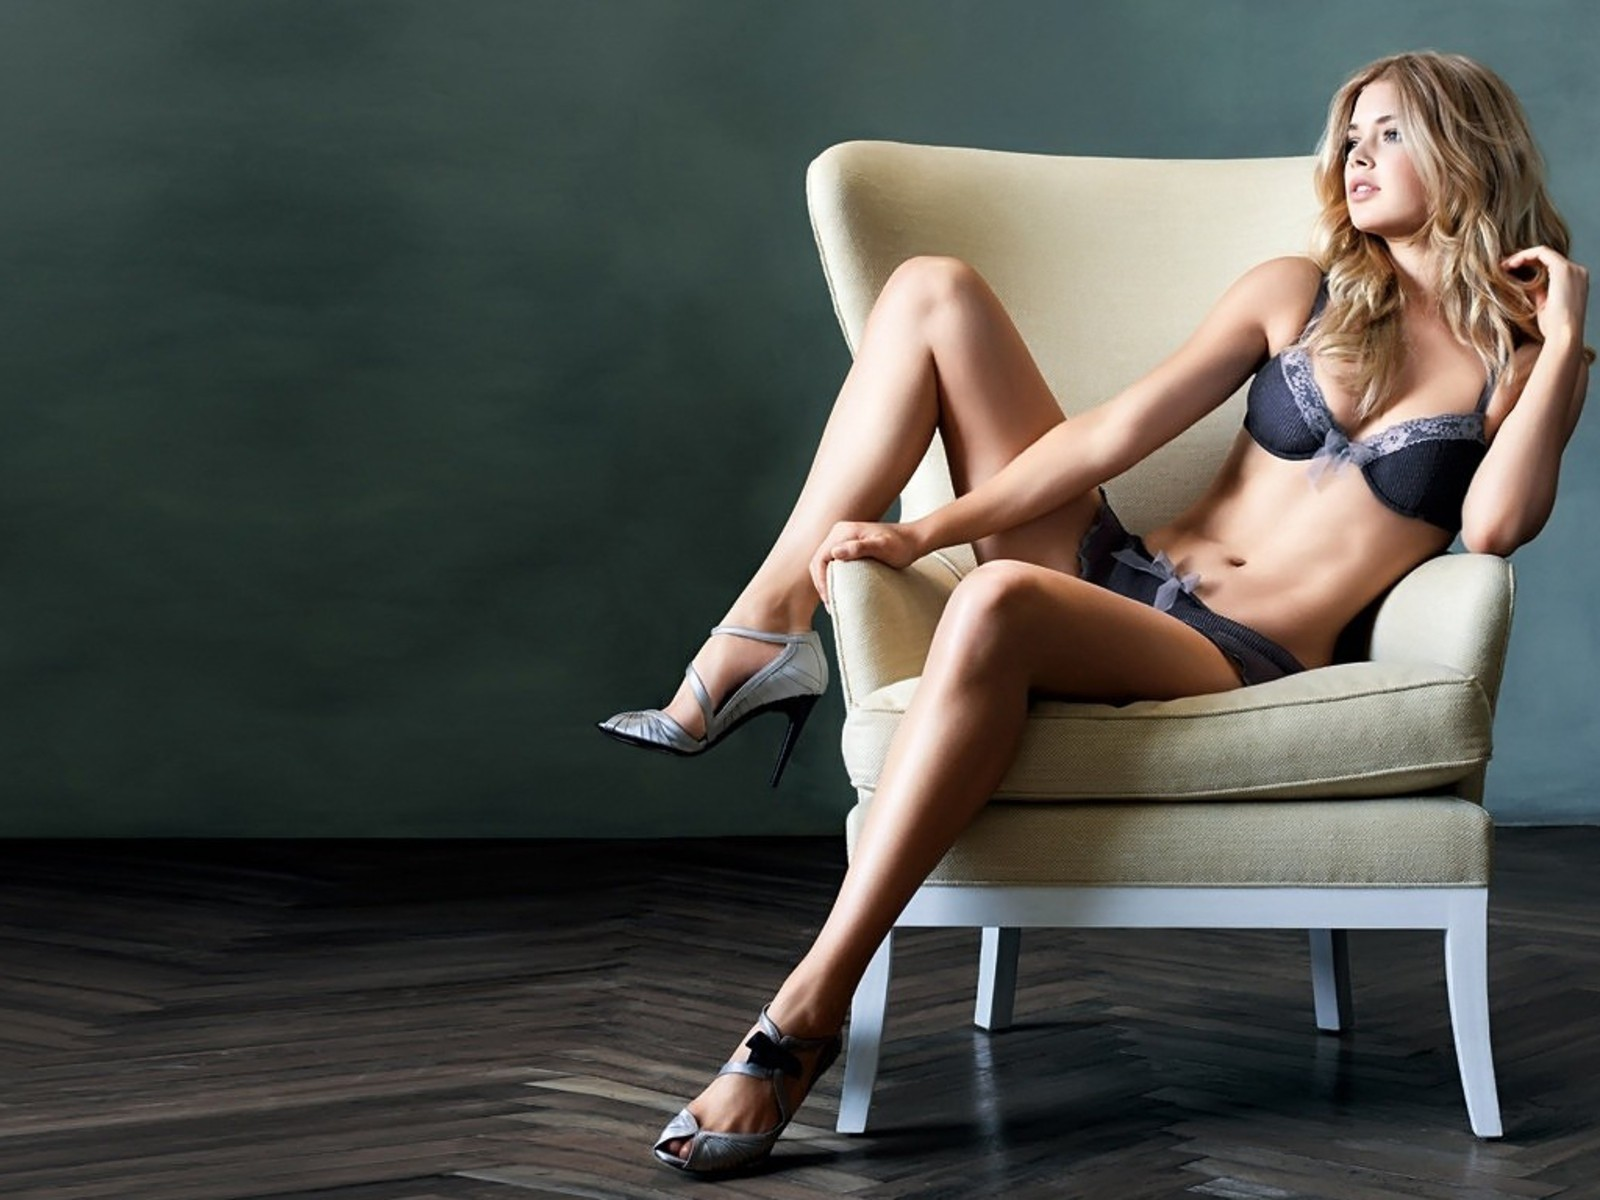 lingerie woman couch models HD Wallpaper